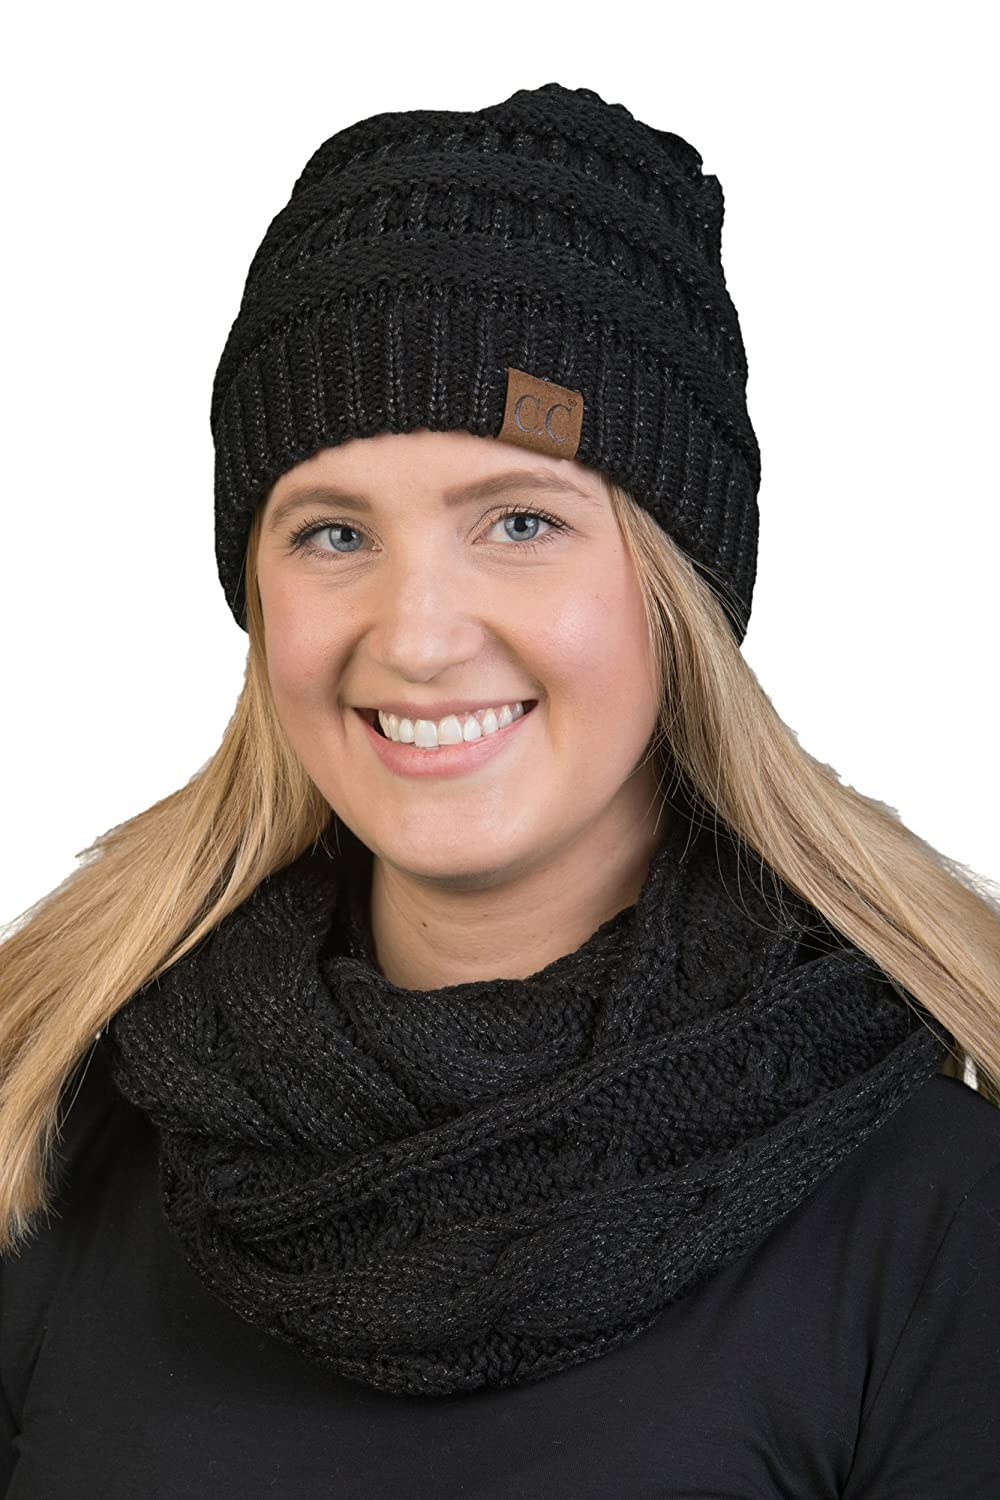 9a7ef19c976 aHS-6800-816.07 Regular Slouchy Beanie Matching Scarf Set Bundle - Brown  4 21 at Amazon Women s Clothing store